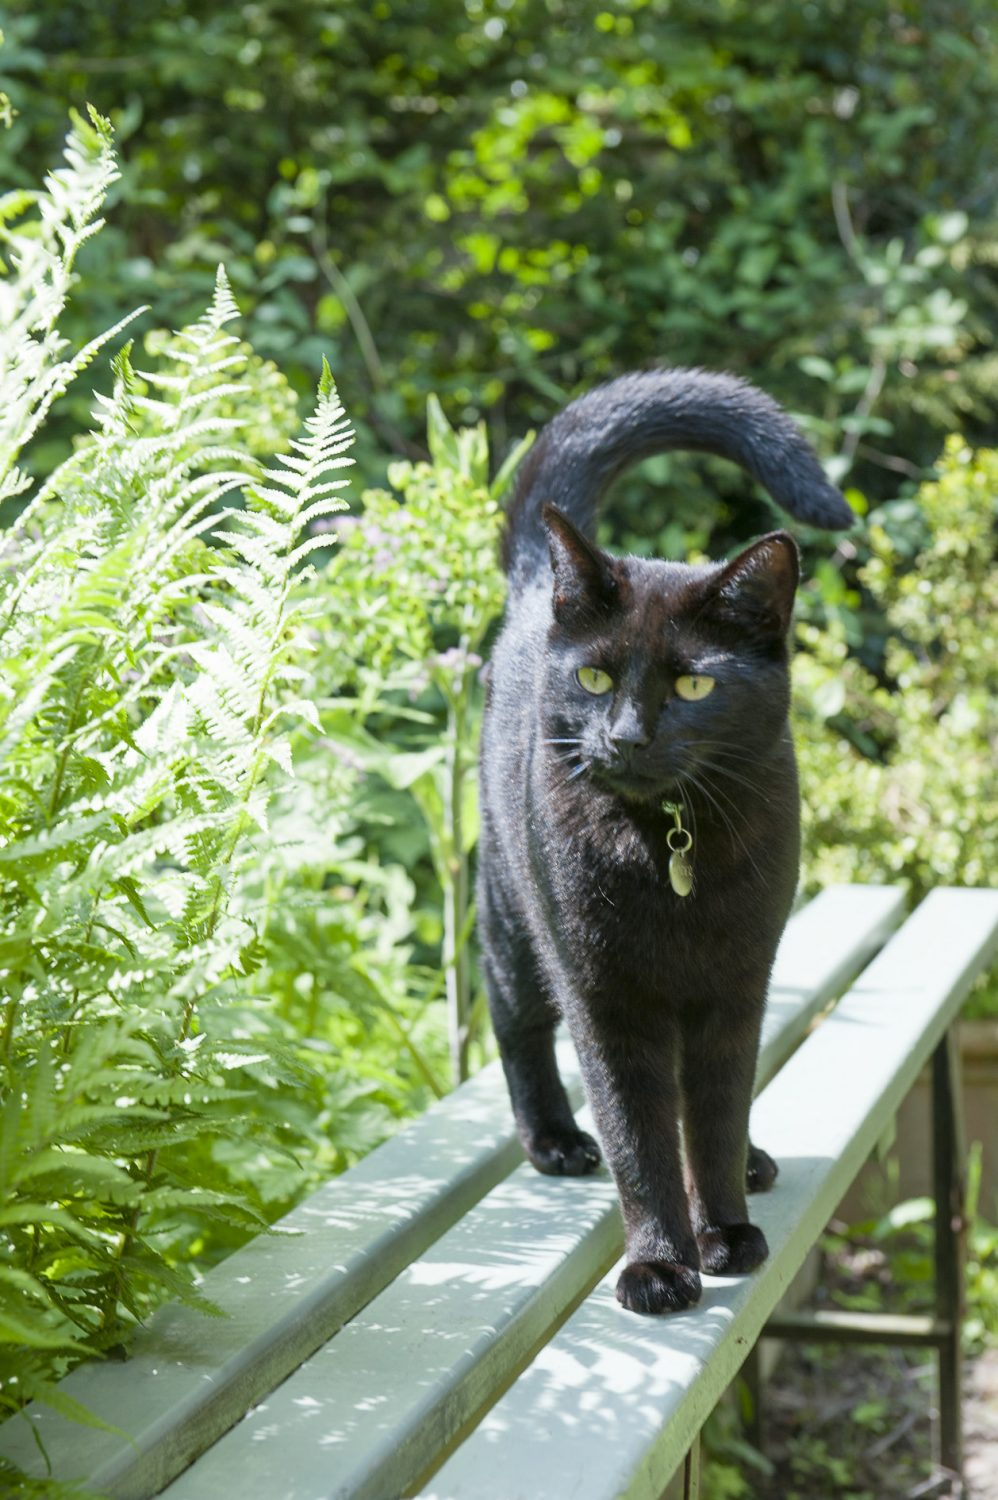 Spider the black cat soaks up some sunshine on a bench